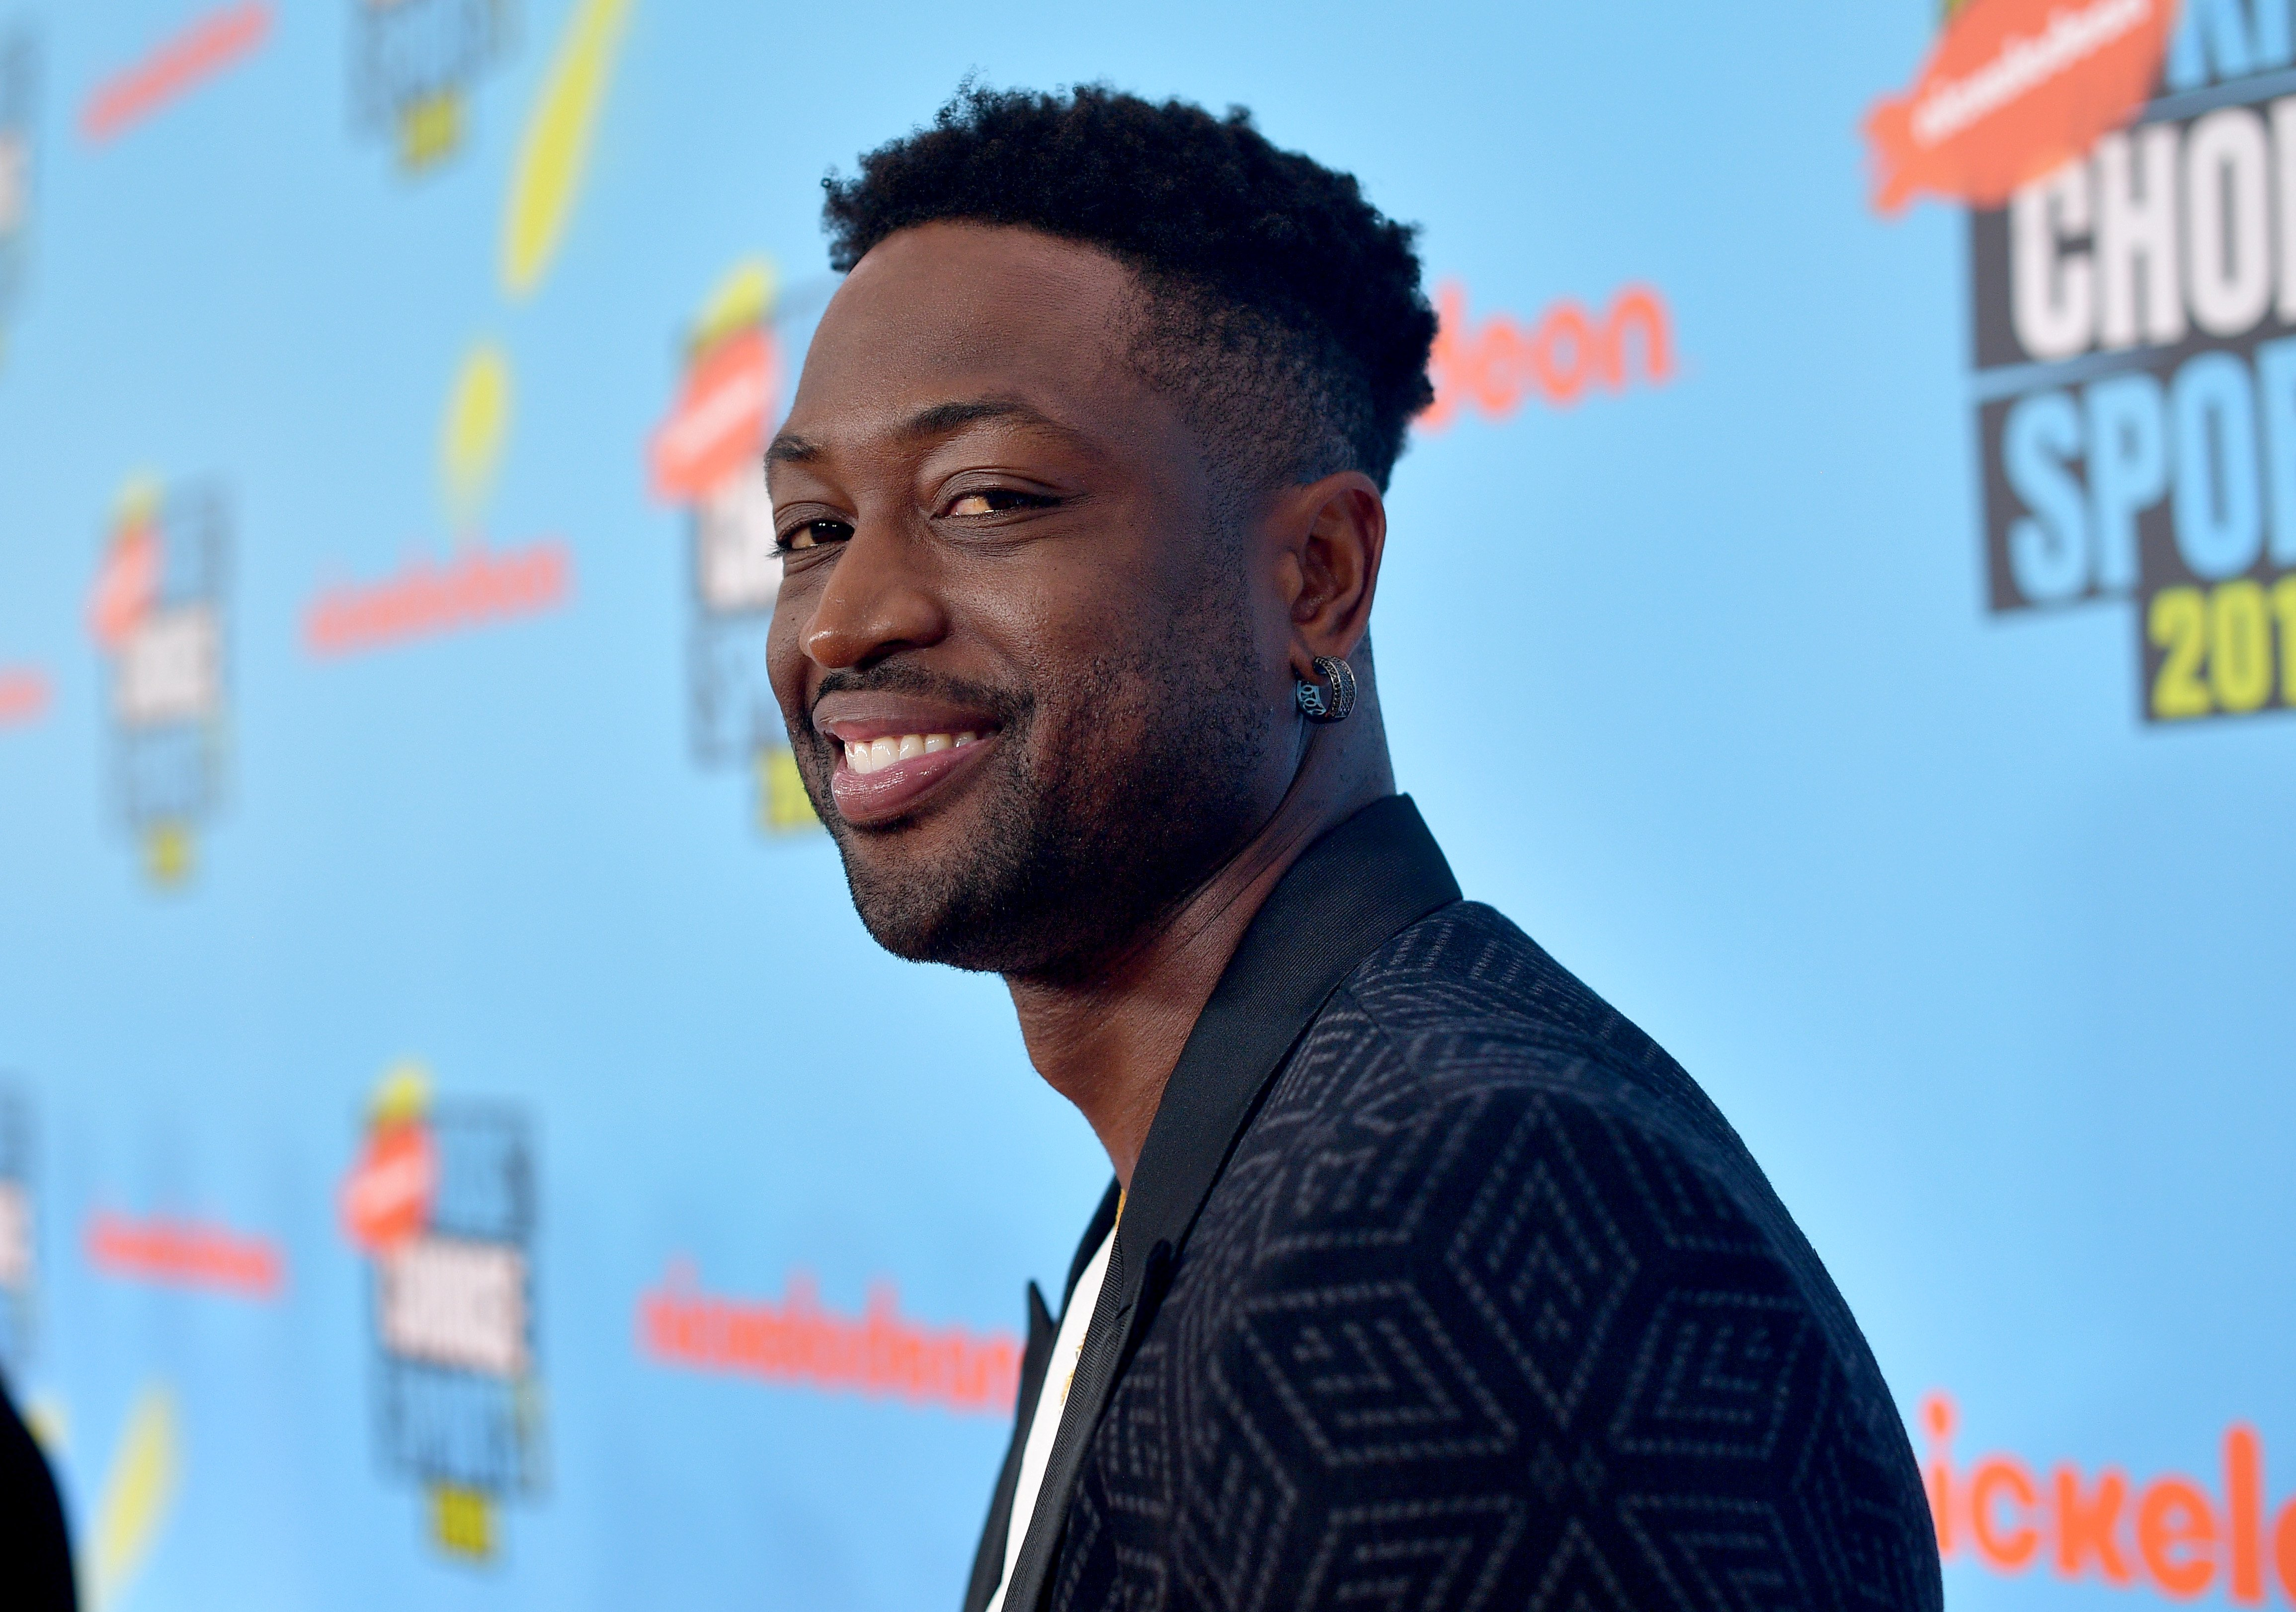 Dwyane Wade attends Nickelodeon Kids' Choice Sports 2019 at Barker Hangar on July 11, 2019. | Photo: Getty Images